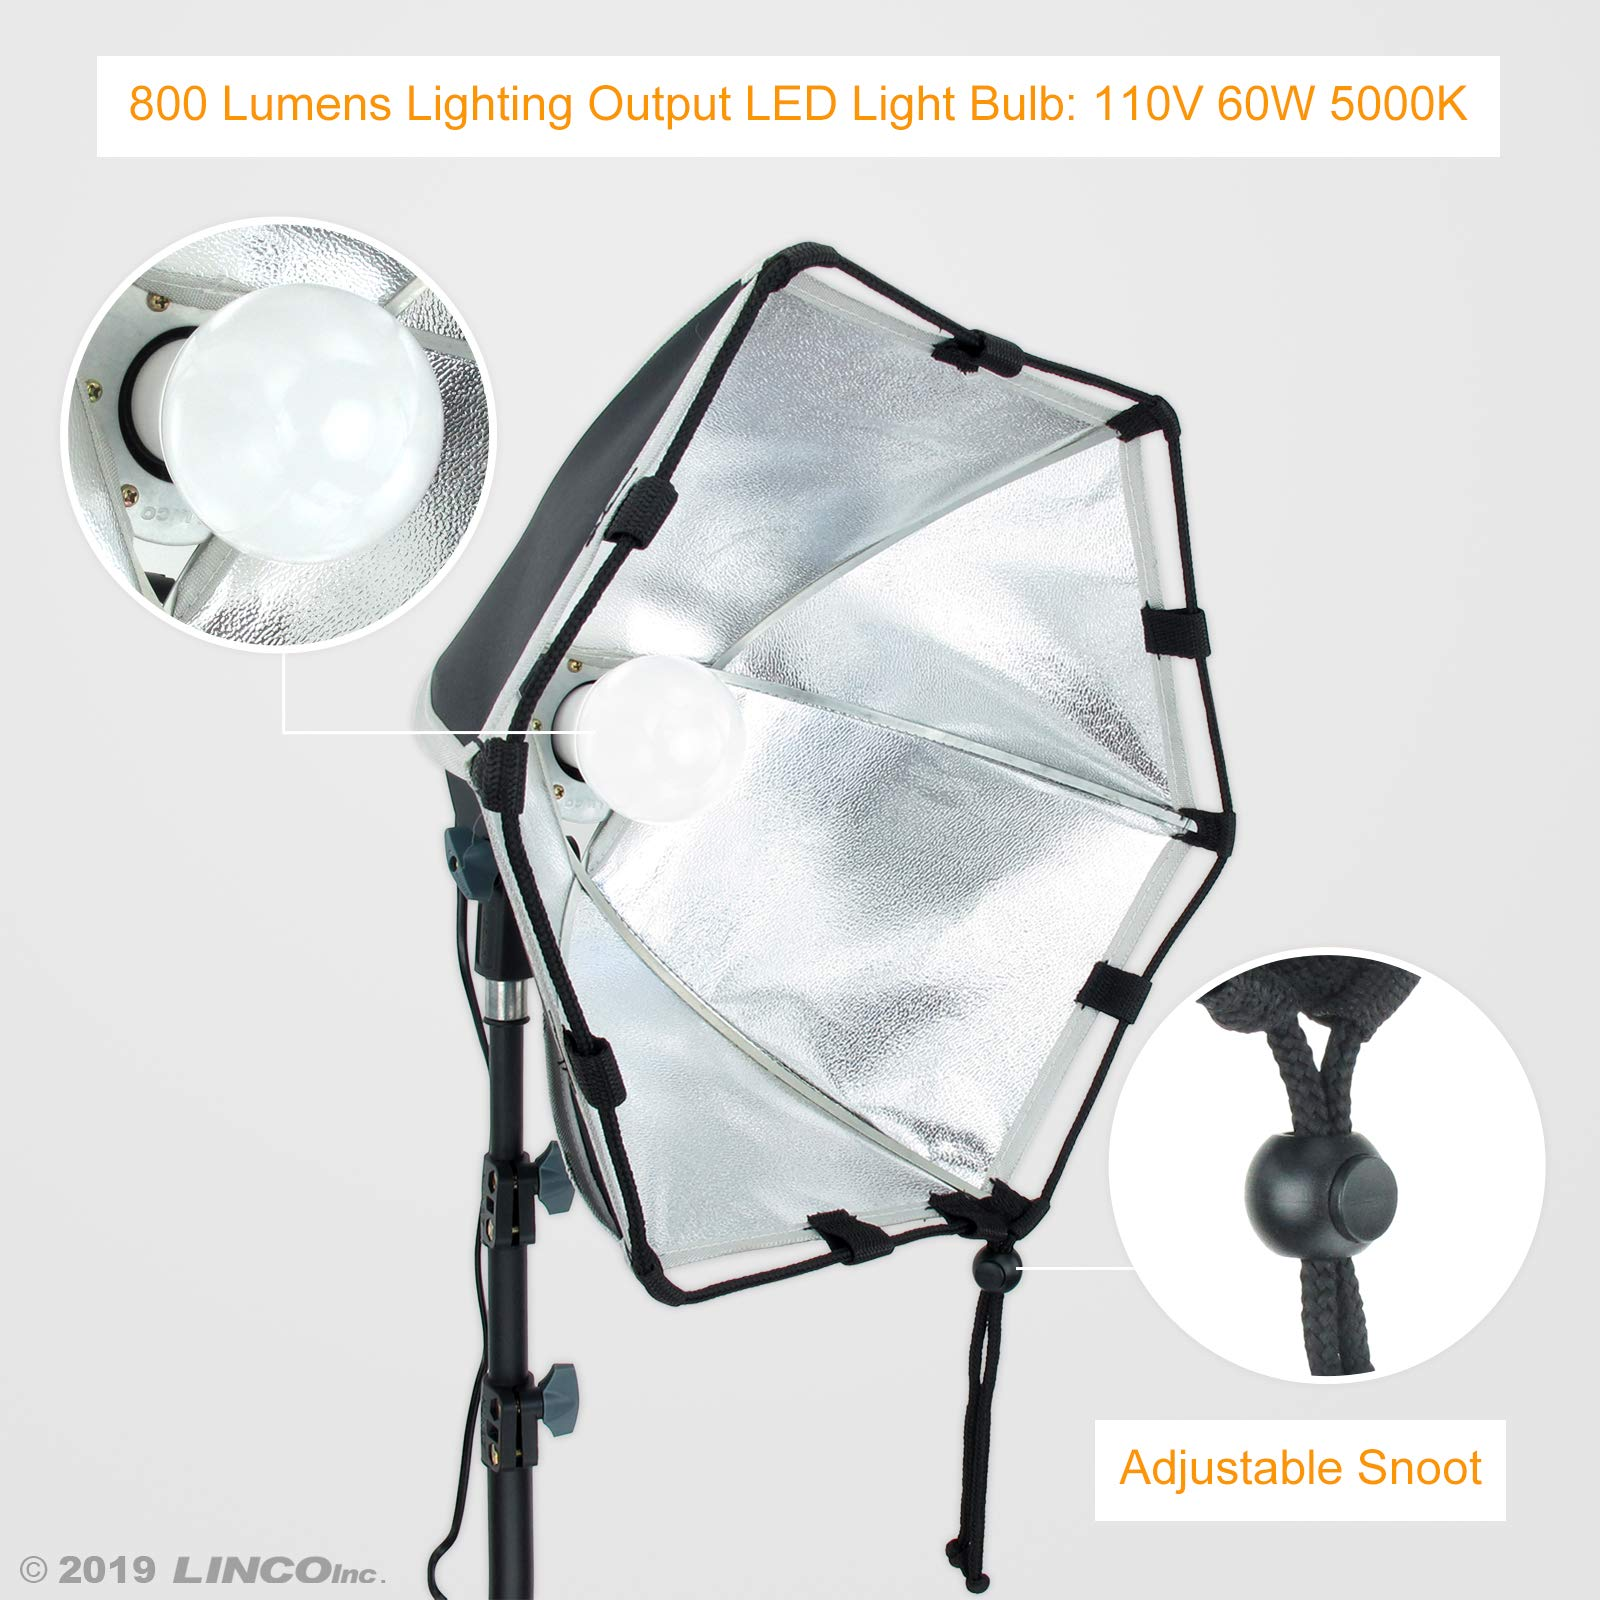 LINCO Lincostore Photography Studio Lighting Kit Arm for Video Continuous Lighting Shadow Boom Box Lights Set Headlight Softbox Setup with Daylight Bulbs 2400 Lumens AM261 by Linco (Image #5)